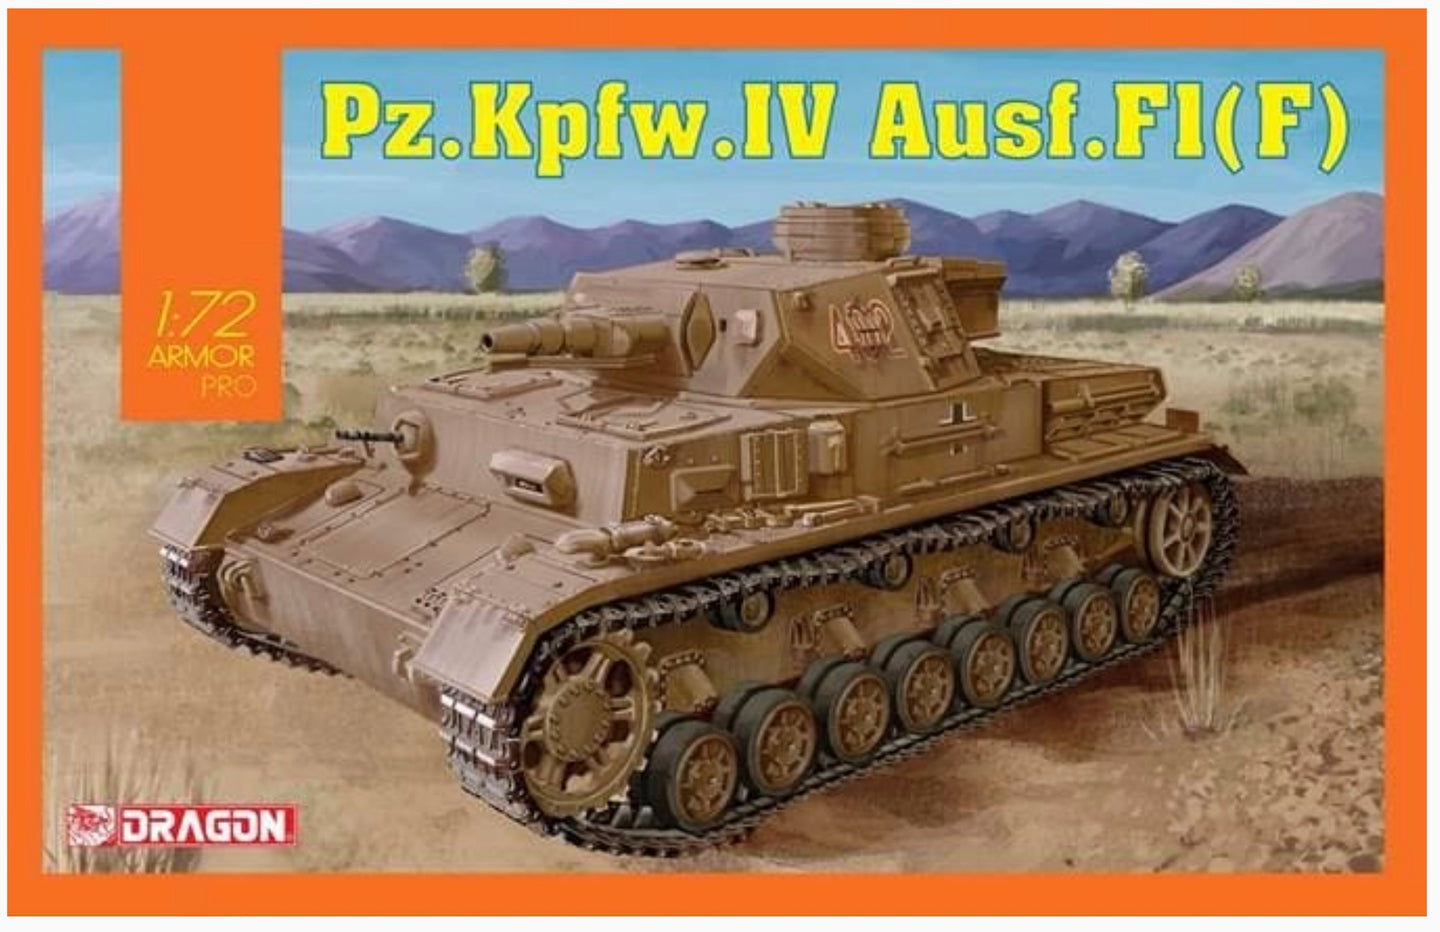 Dragon 1/72 German Pz.Kpfw.IV Ausf.F1(F) 7560